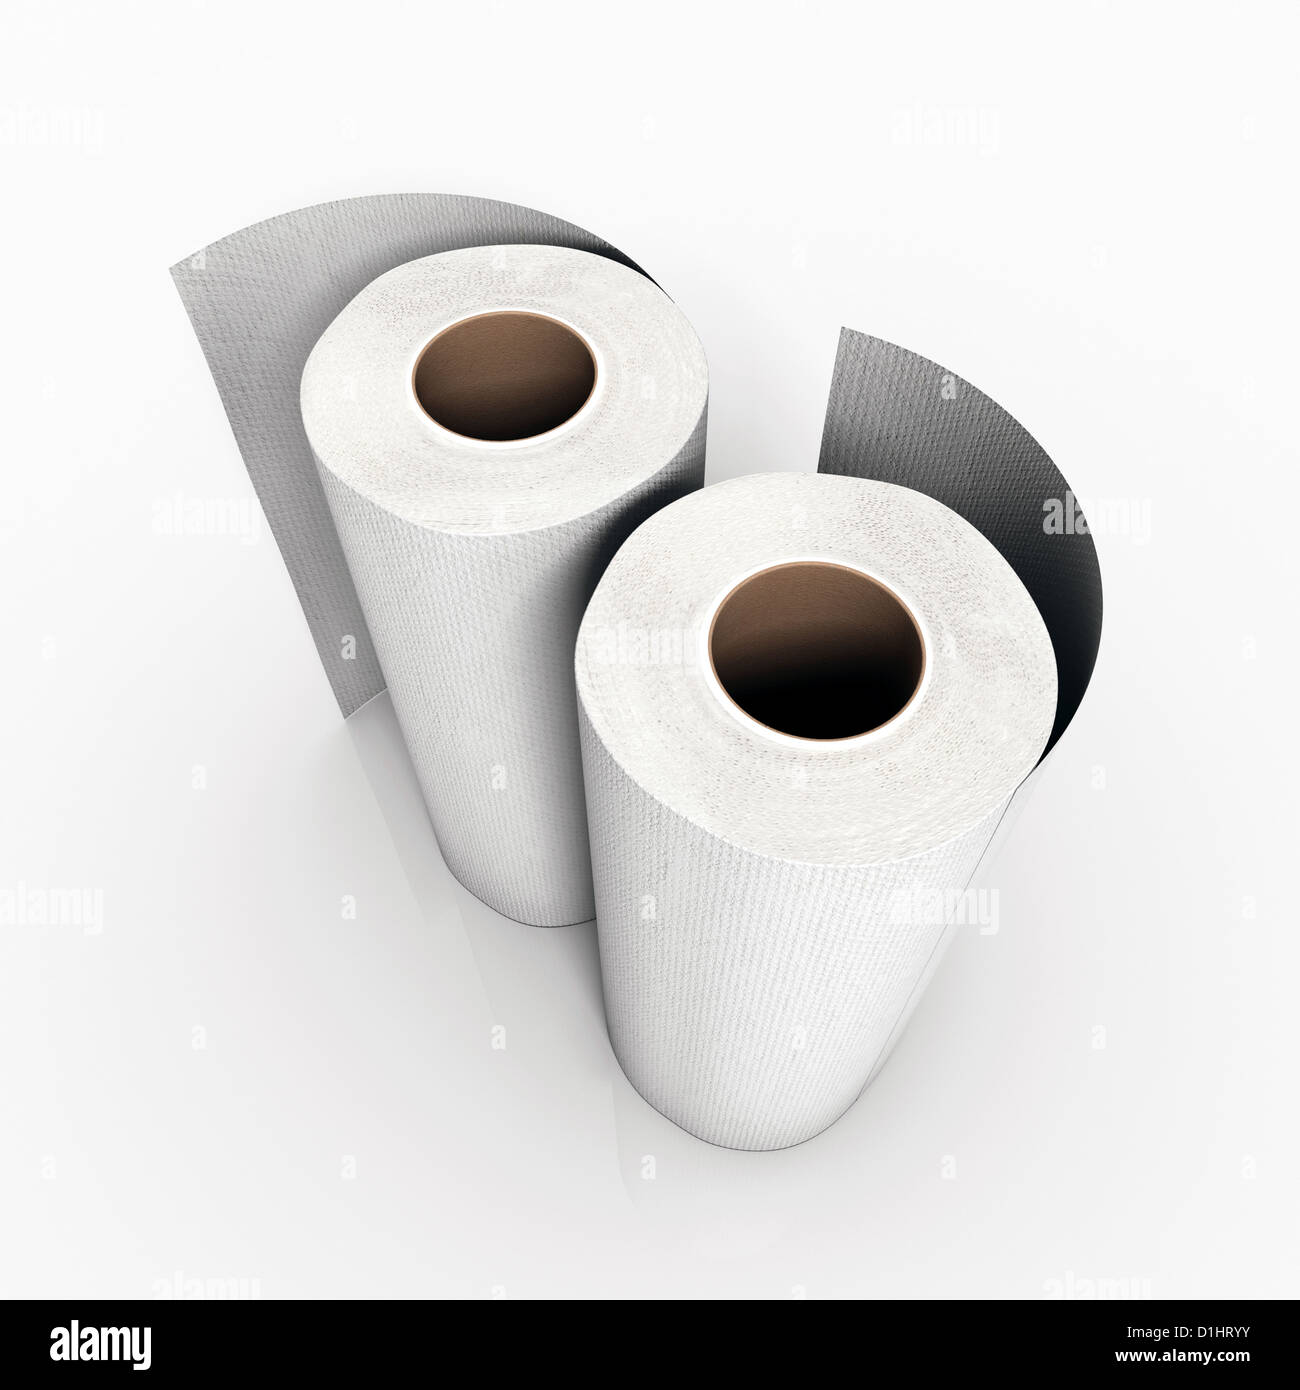 paper towels isolated on white background Stock Photo